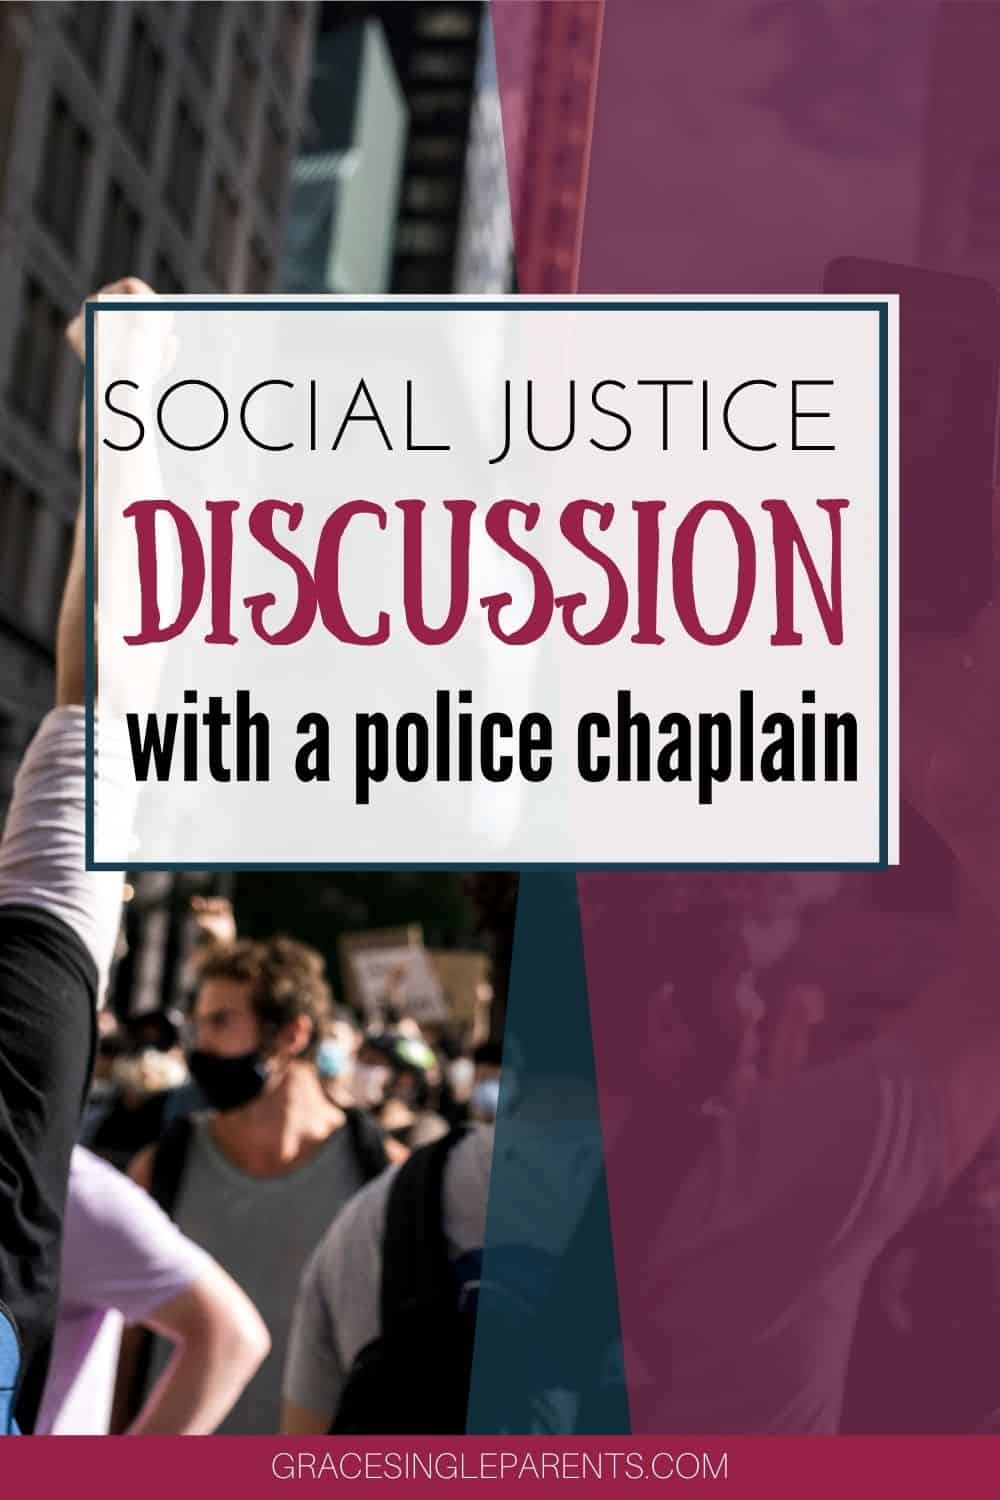 A Discussion about Social Justice Issues with a police chaplain